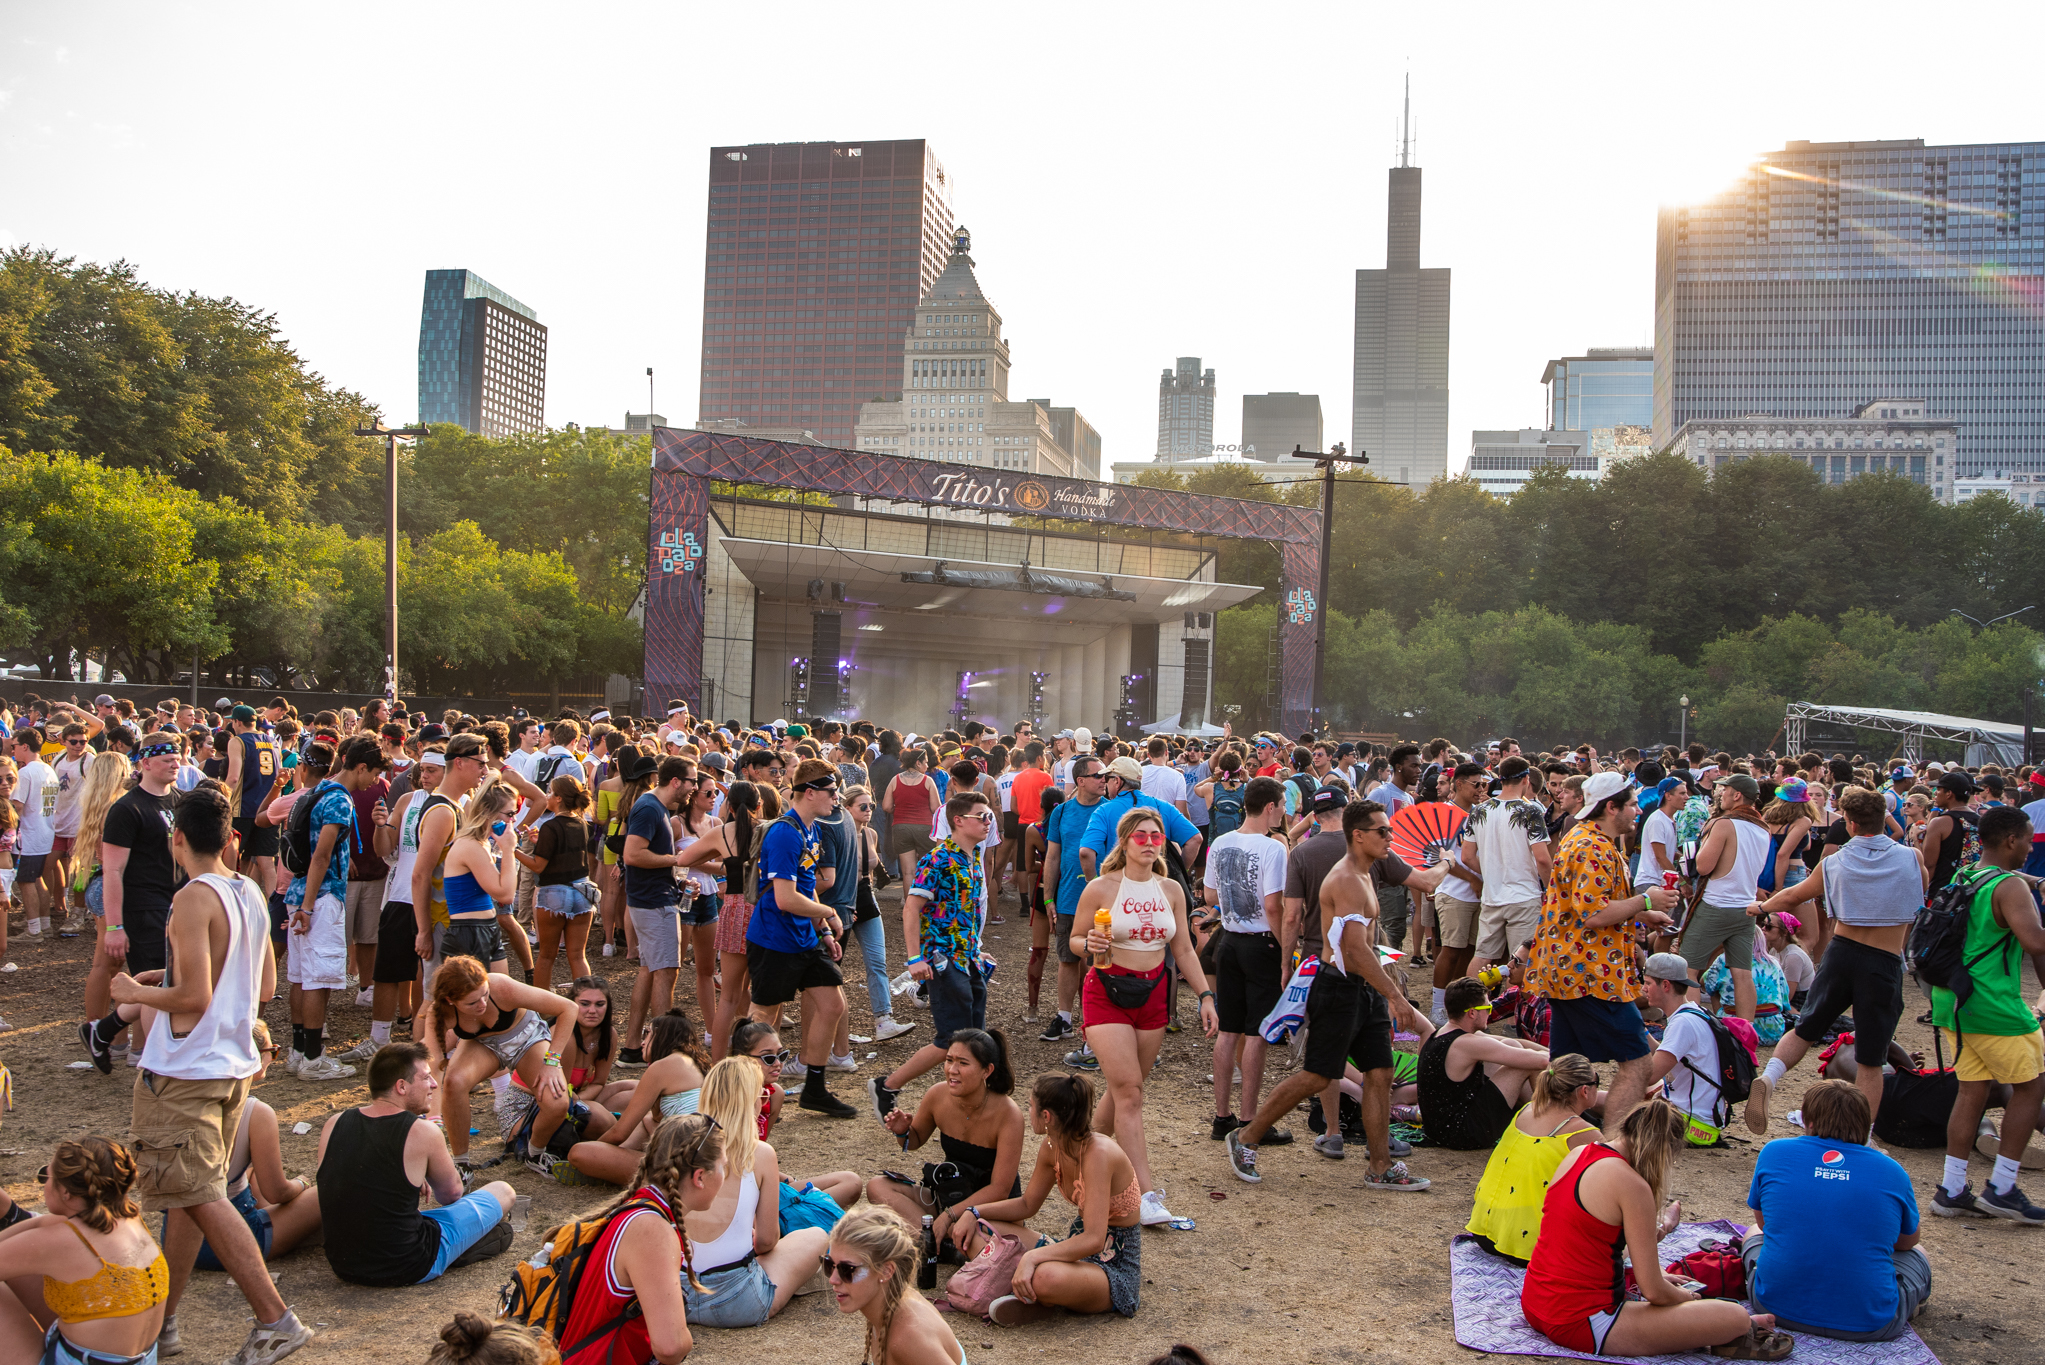 PSA: You won't be able to eat a lobster corndog at Lollapalooza this year